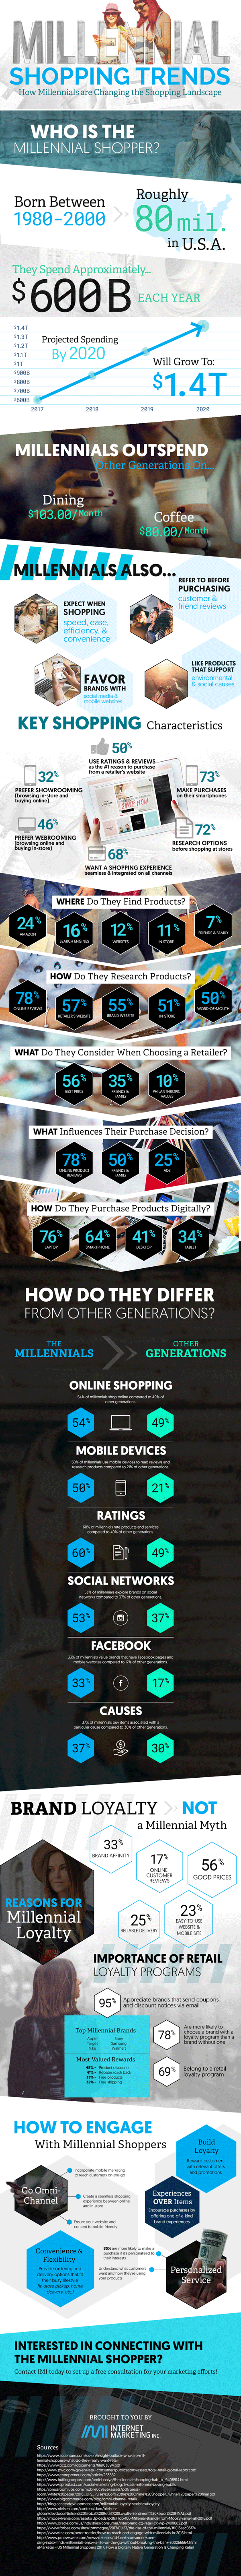 Millennial shopping infographic